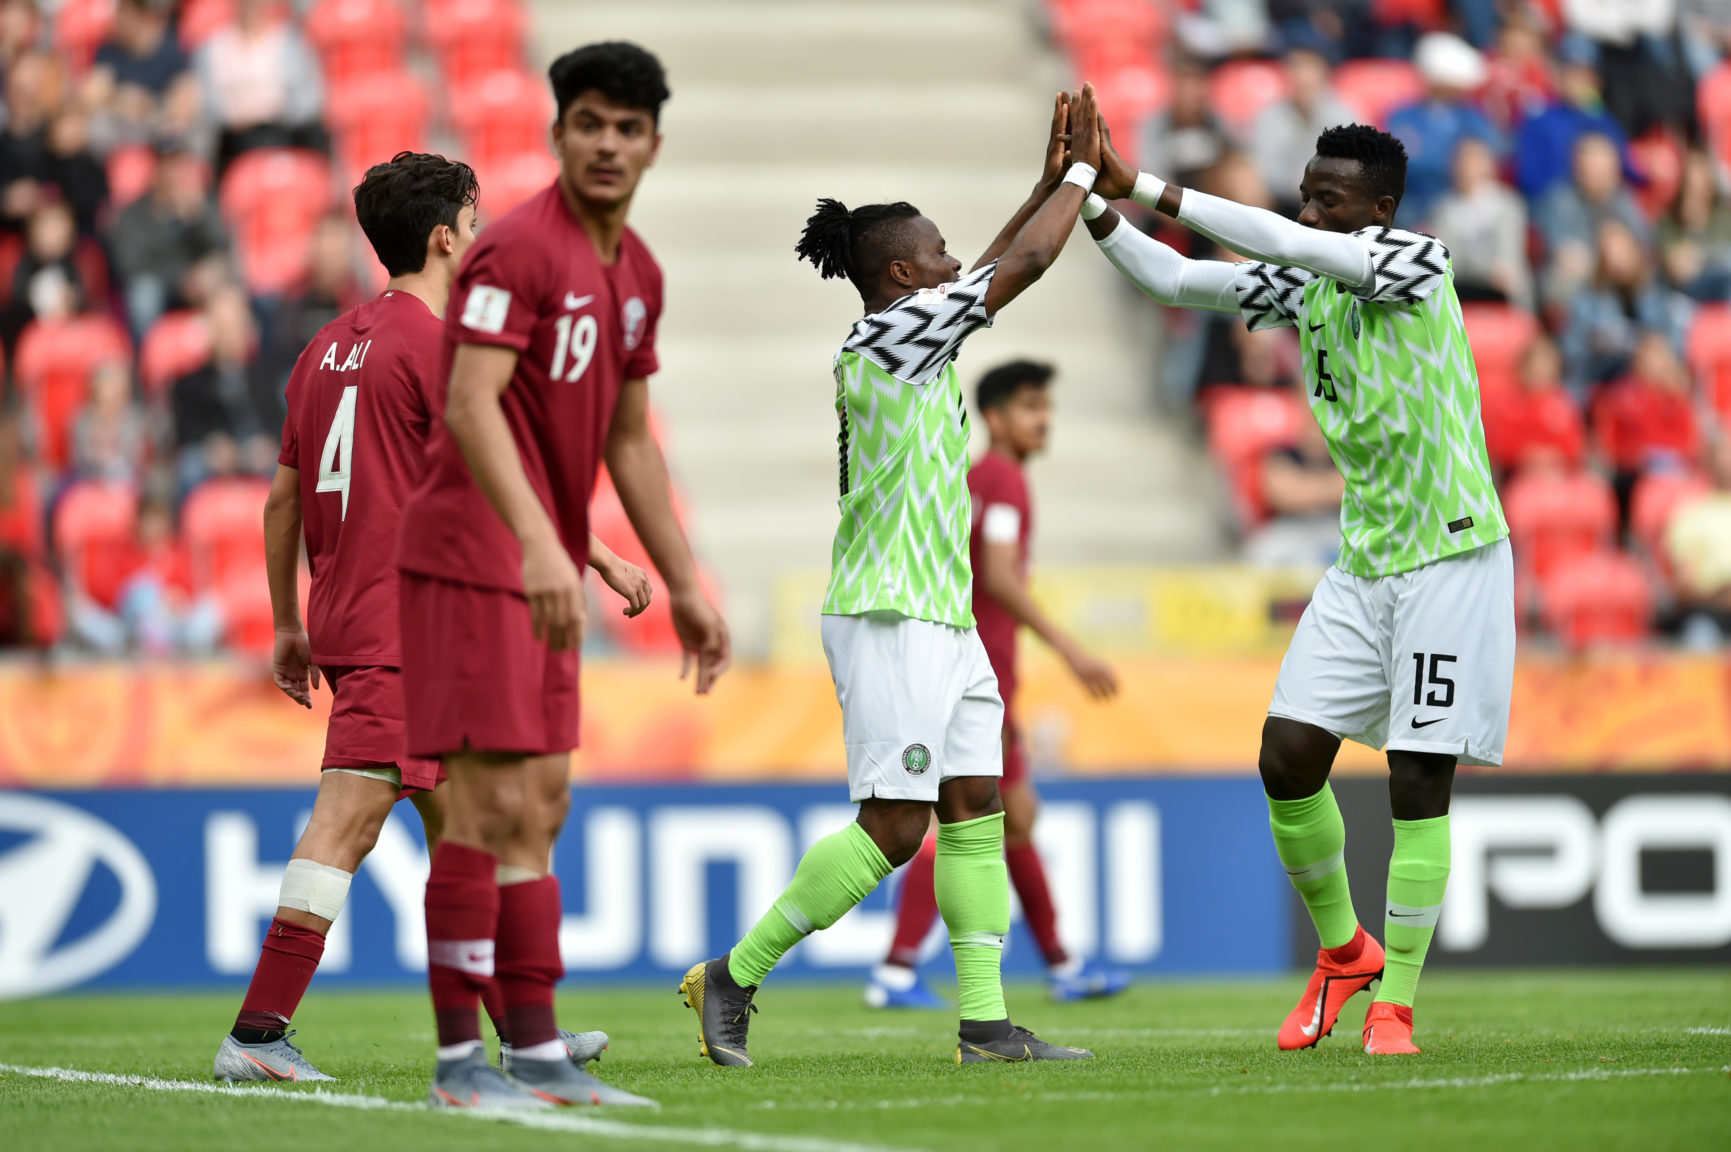 Poland 2019: Flying Eagles stroll past Qatar in opening Group D game